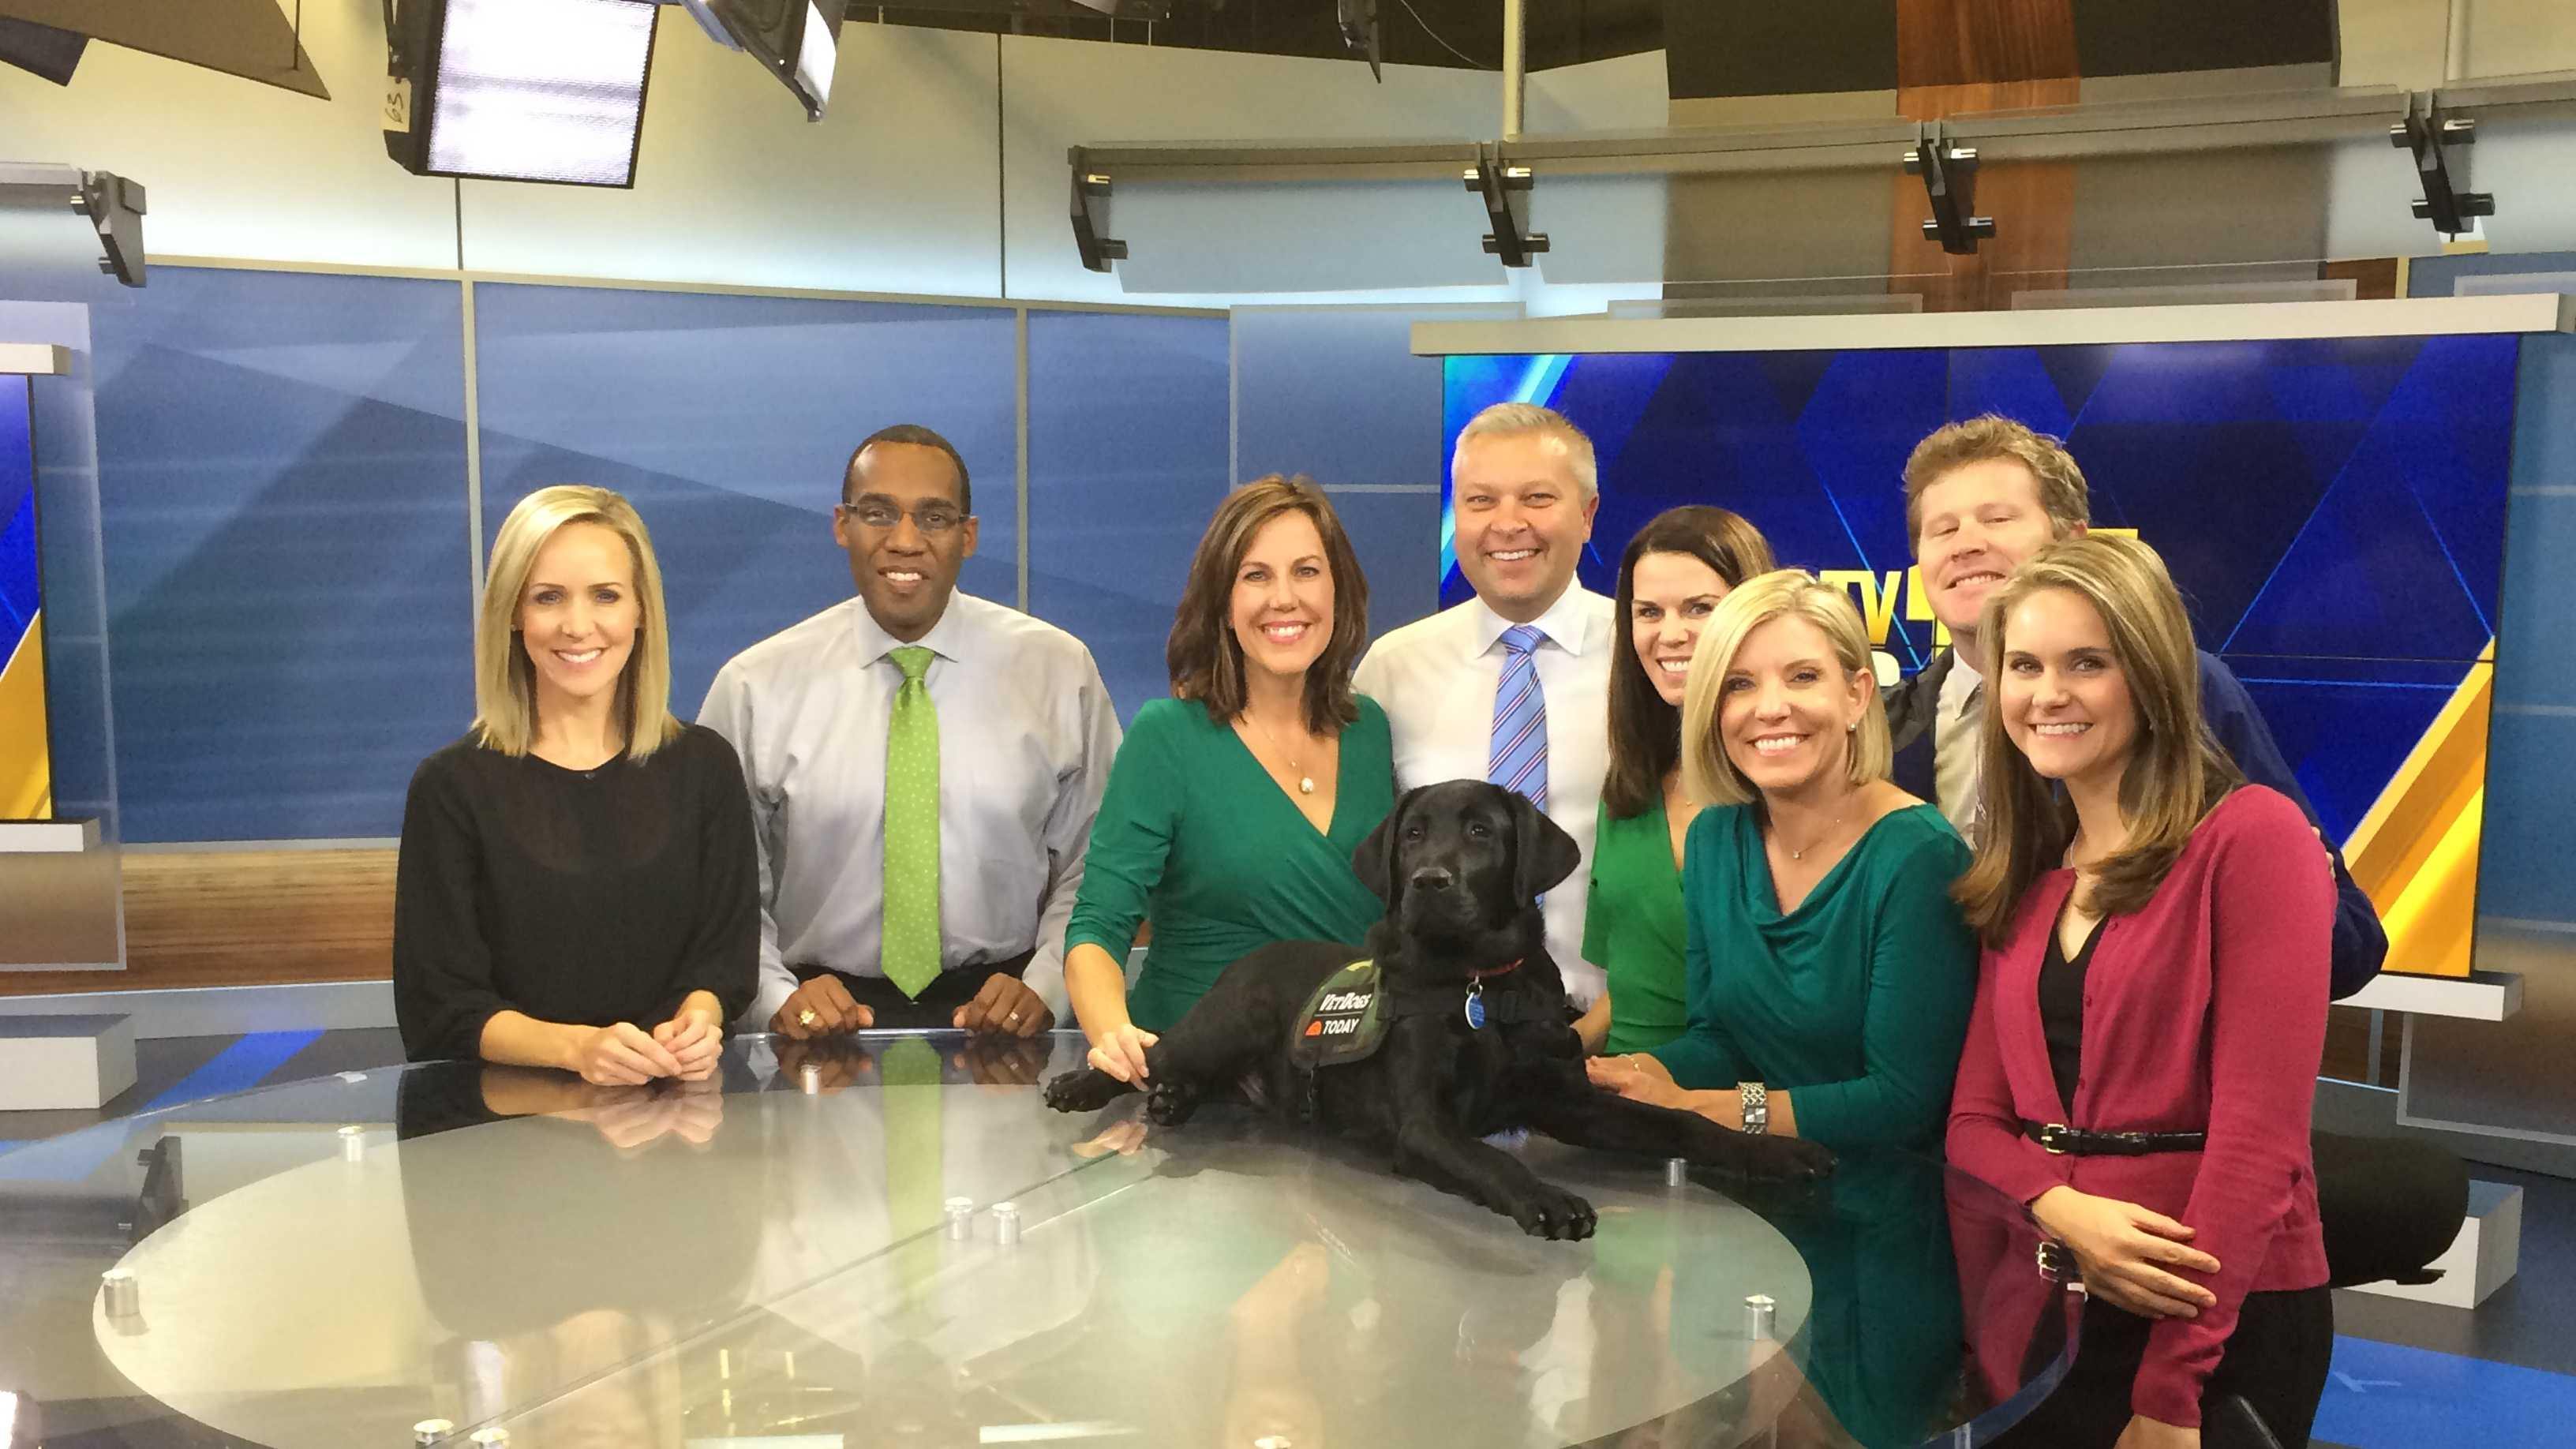 Charlie, who is being trained by America's VetDogs to be a service dog, visits with the 11 News today team